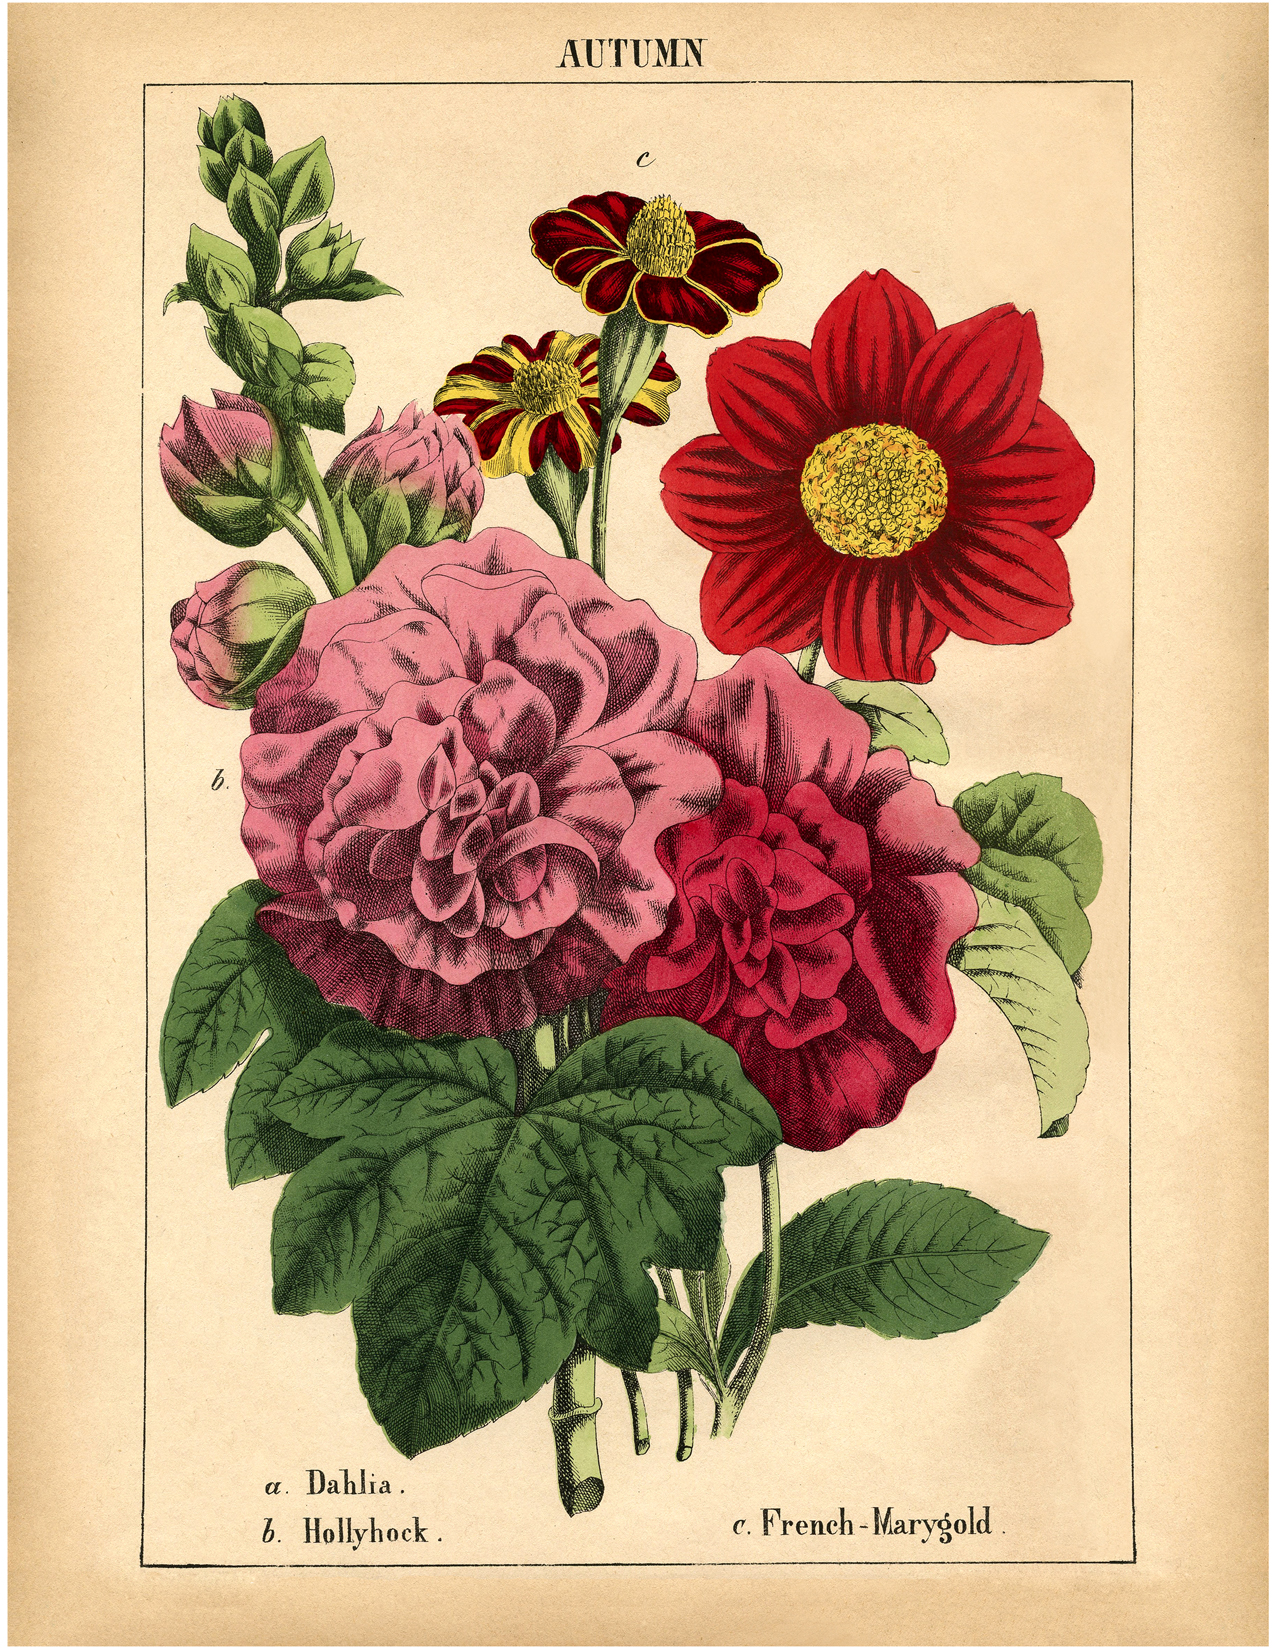 Handy image with printable of flowers